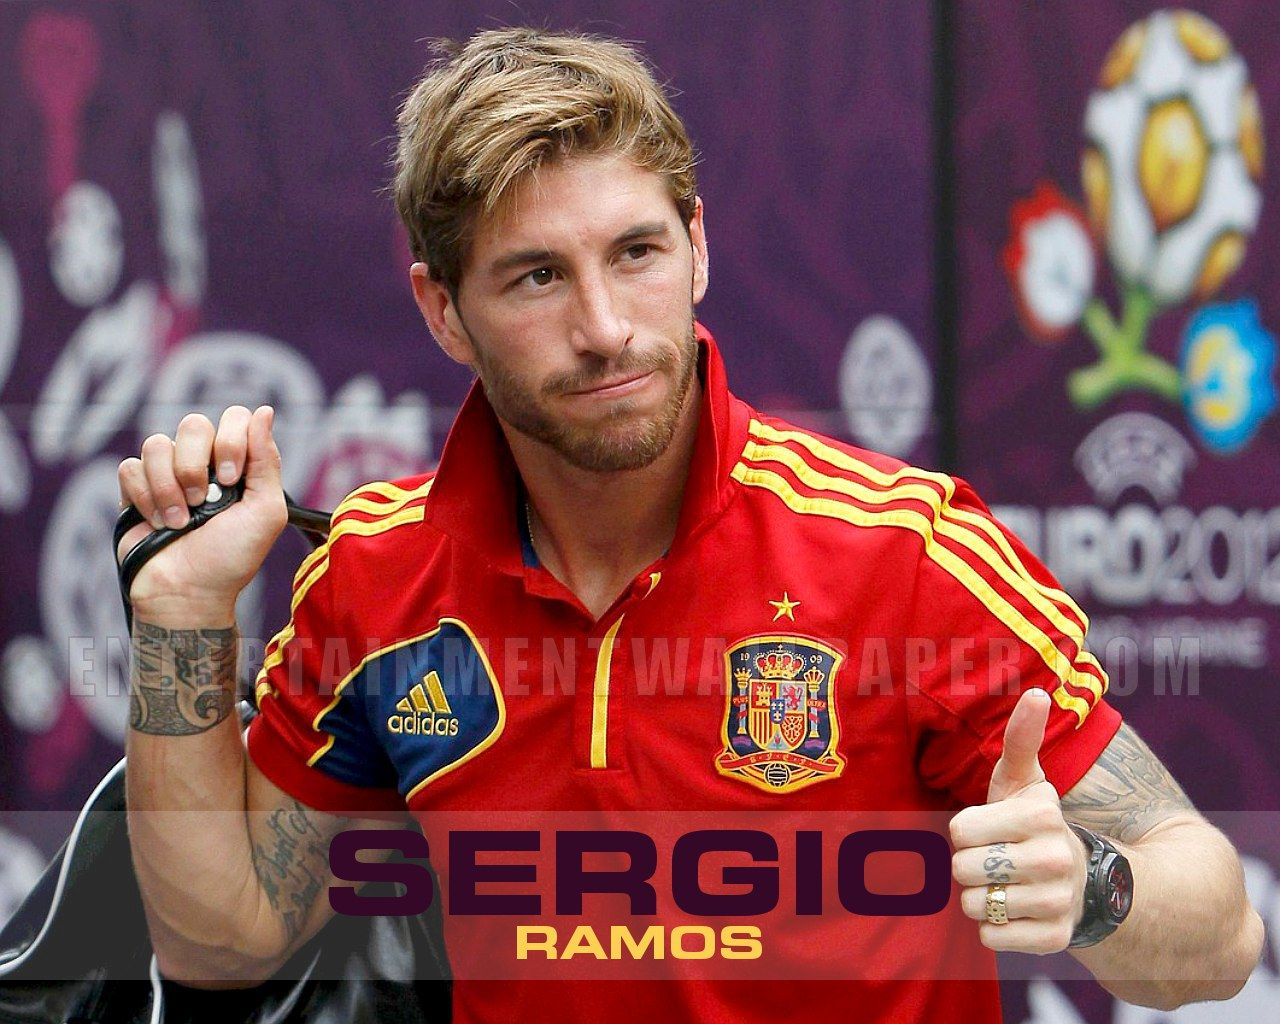 Sergio-Ramos-Wallpaper-FIFA-Word-Cup-2014 (With Images